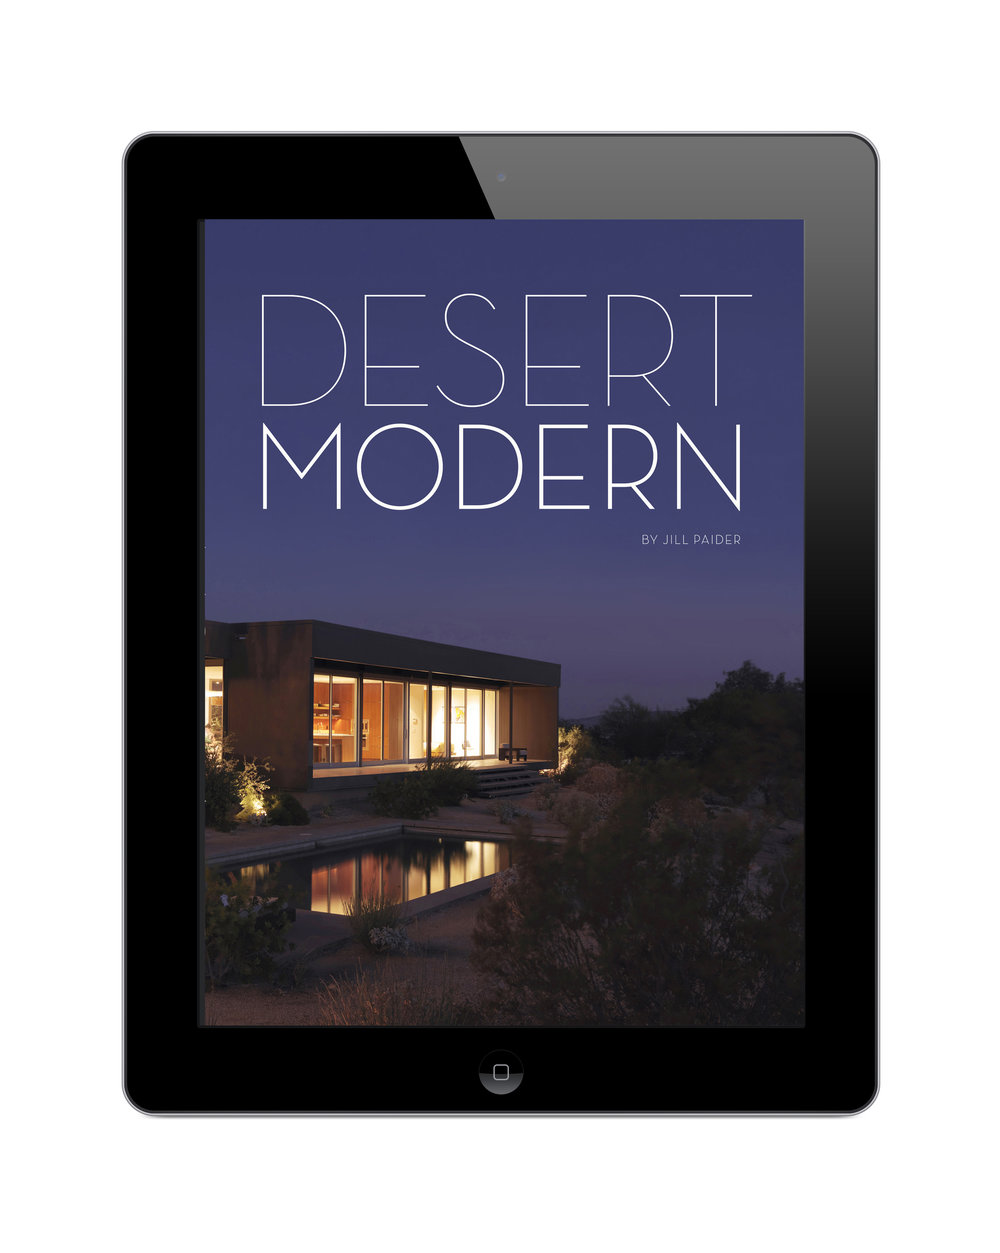 DESERT MODERN - DIGITAL EDITION